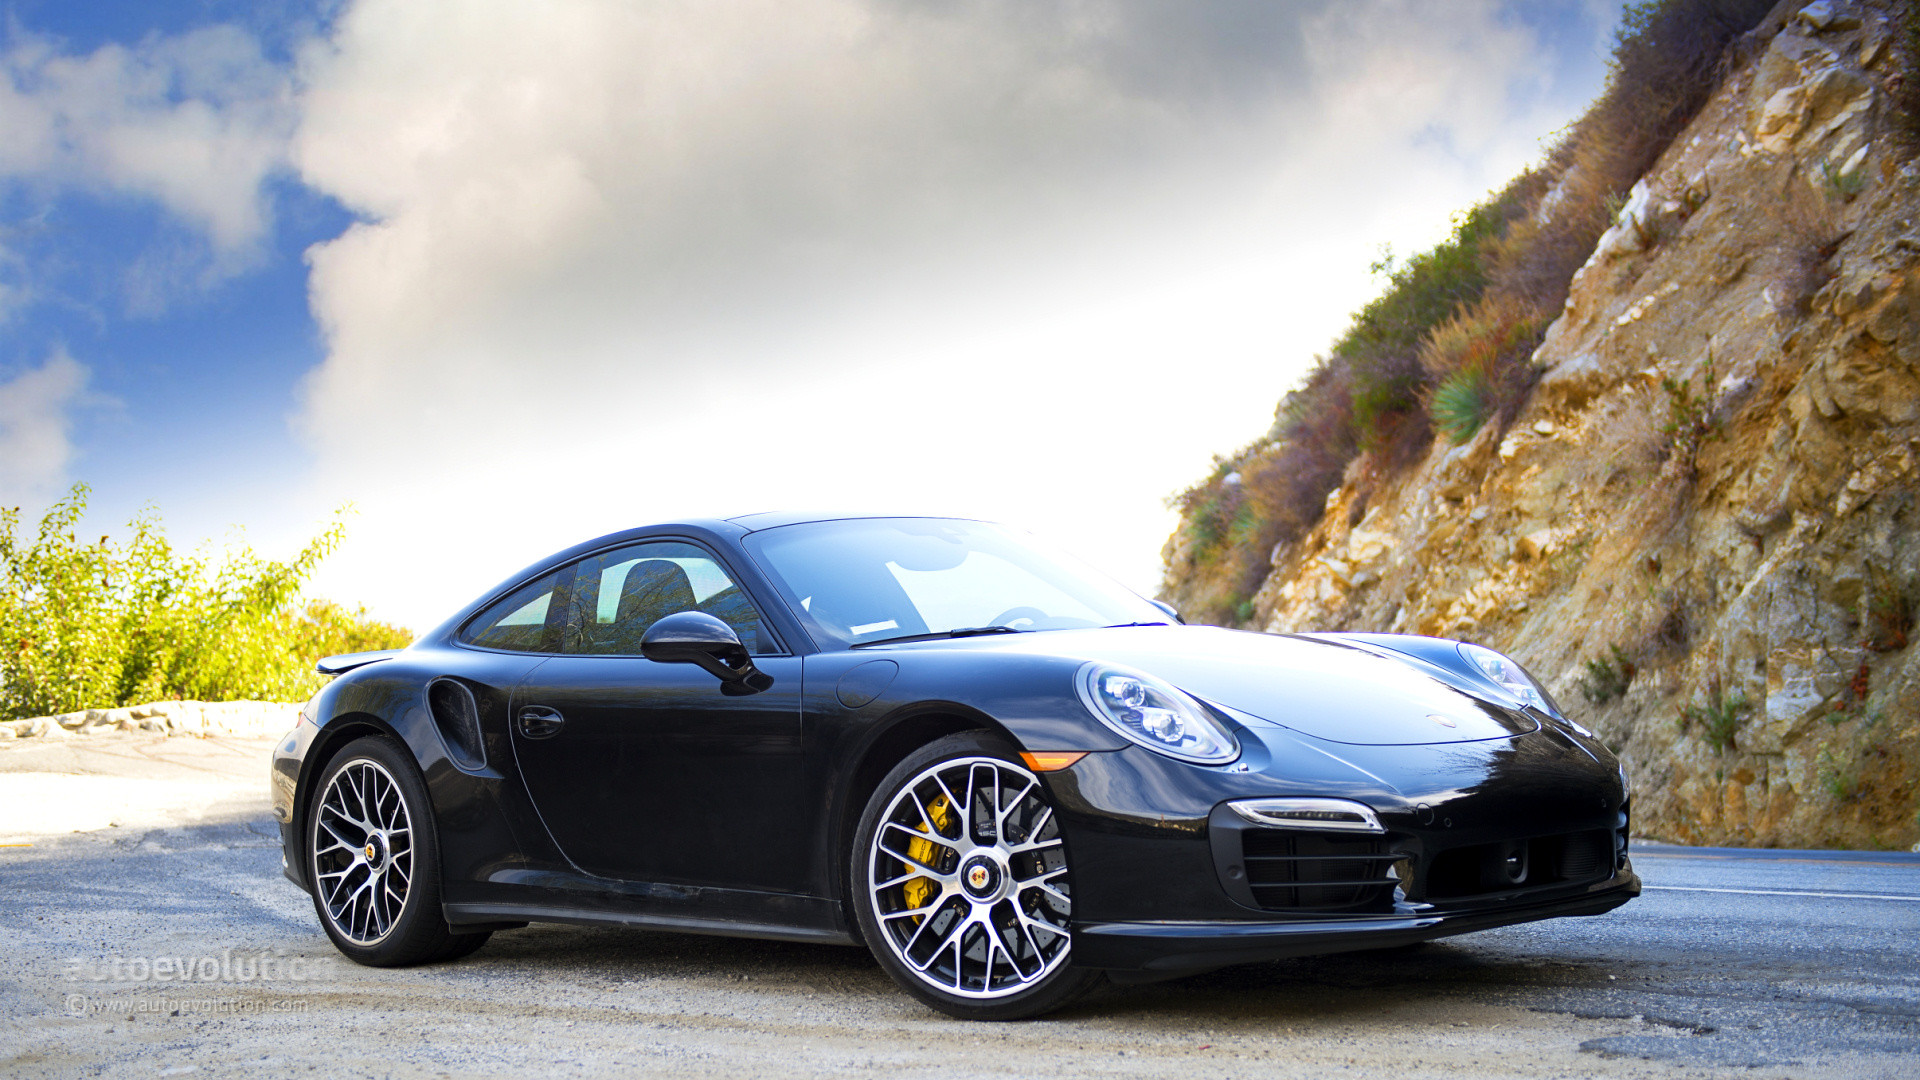 1920x1080 Porsche 911 2015 Black 2015 Porsche 911 Turbo White Free Wallpaper Desktop